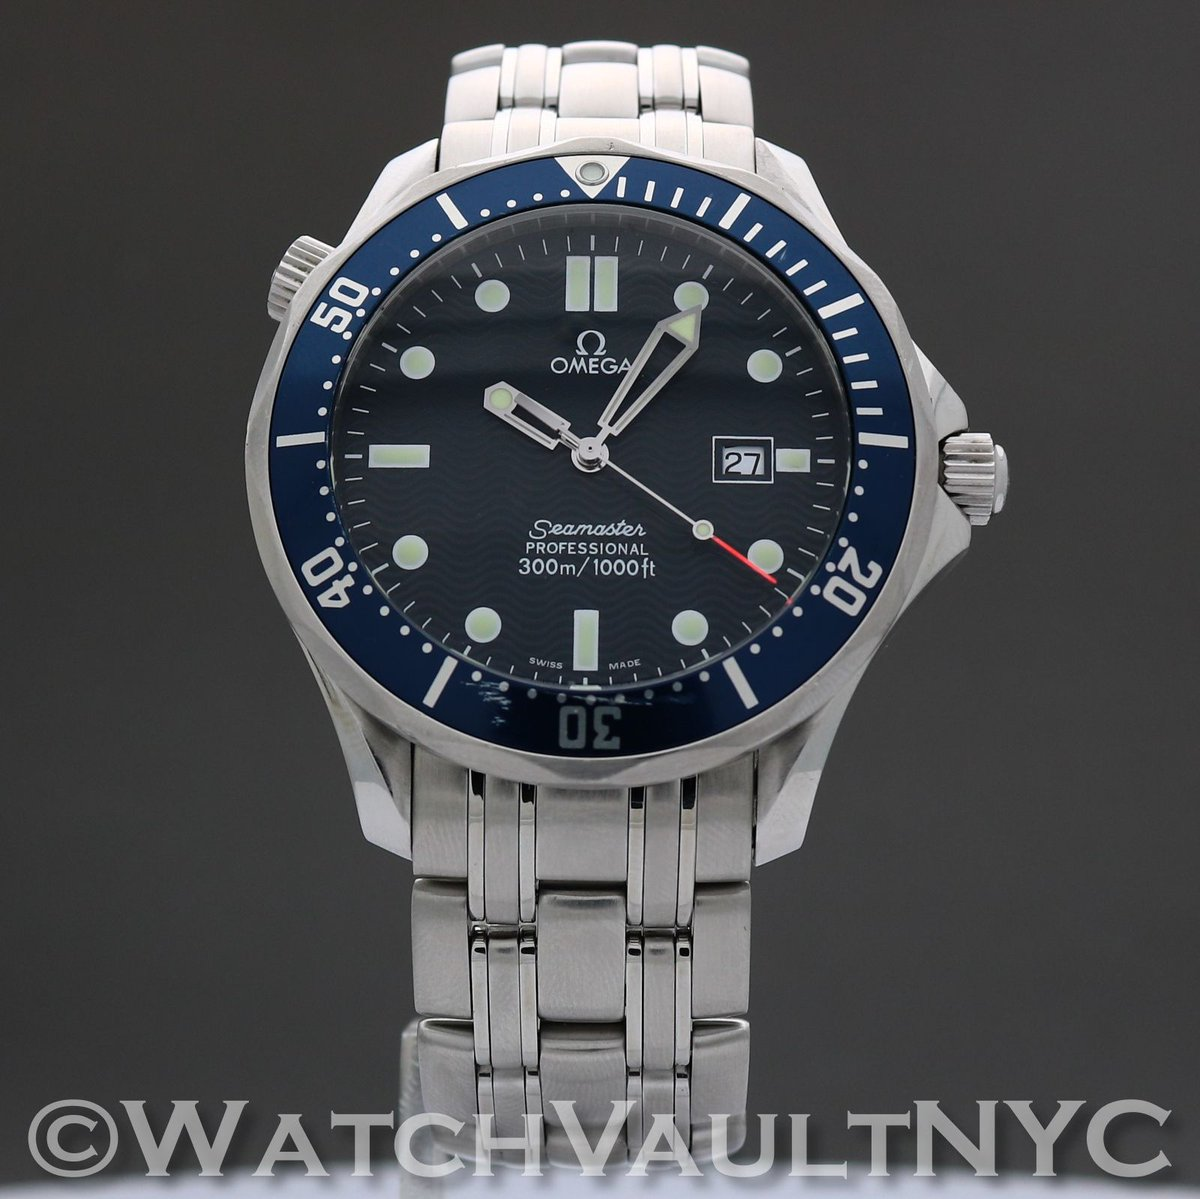 #jamesbond #piercebrosnan #wristwatch in #goldeneye and #iconic #dive #watch #omega #seamaster #254180 just arrived and #forsale at #watchvaultnyc #watchporn Tap my profile to shop,email or call about this watch!